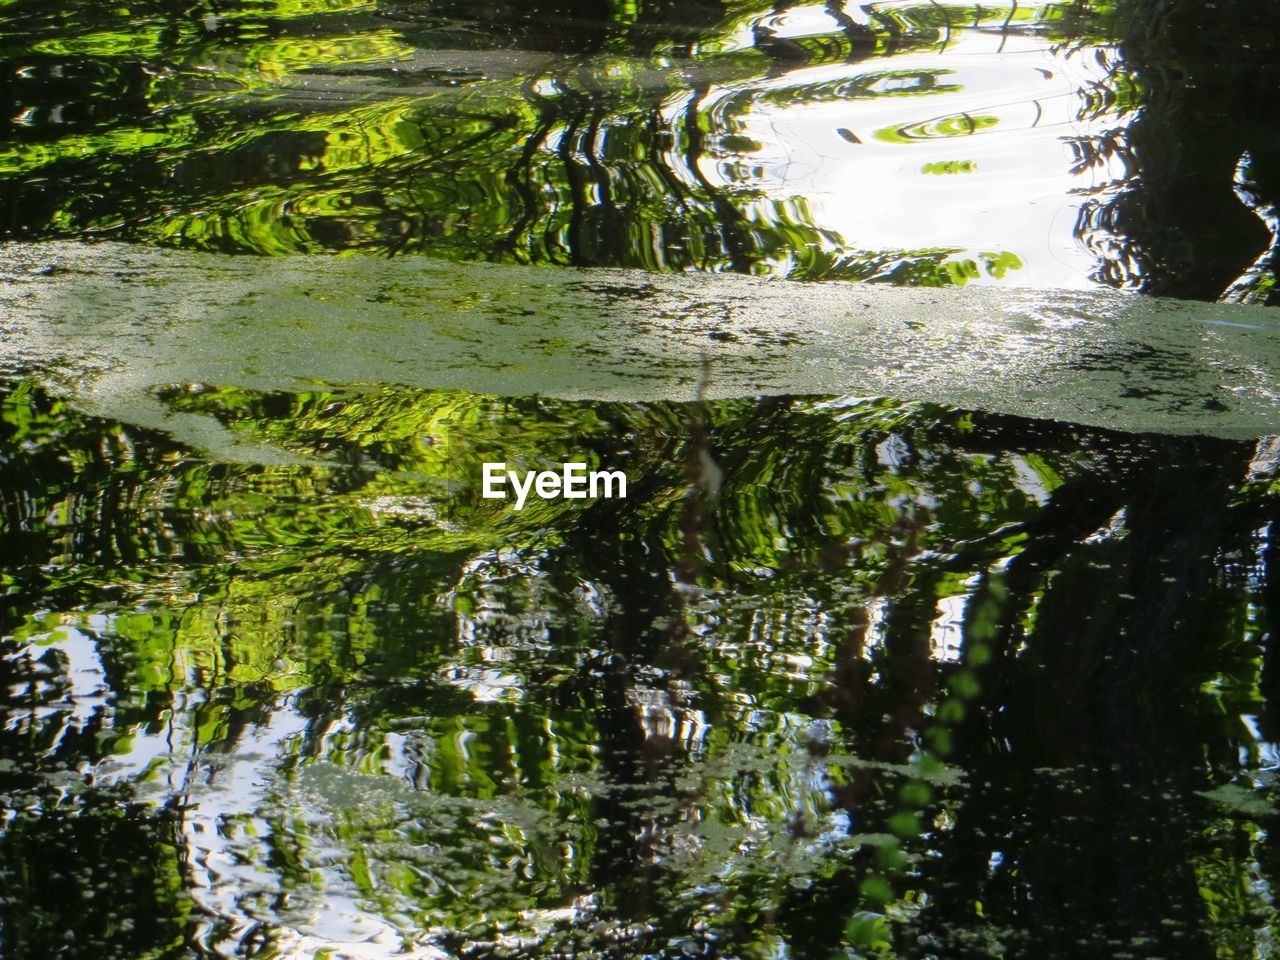 reflection, water, no people, day, green color, outdoors, nature, puddle, close-up, animal themes